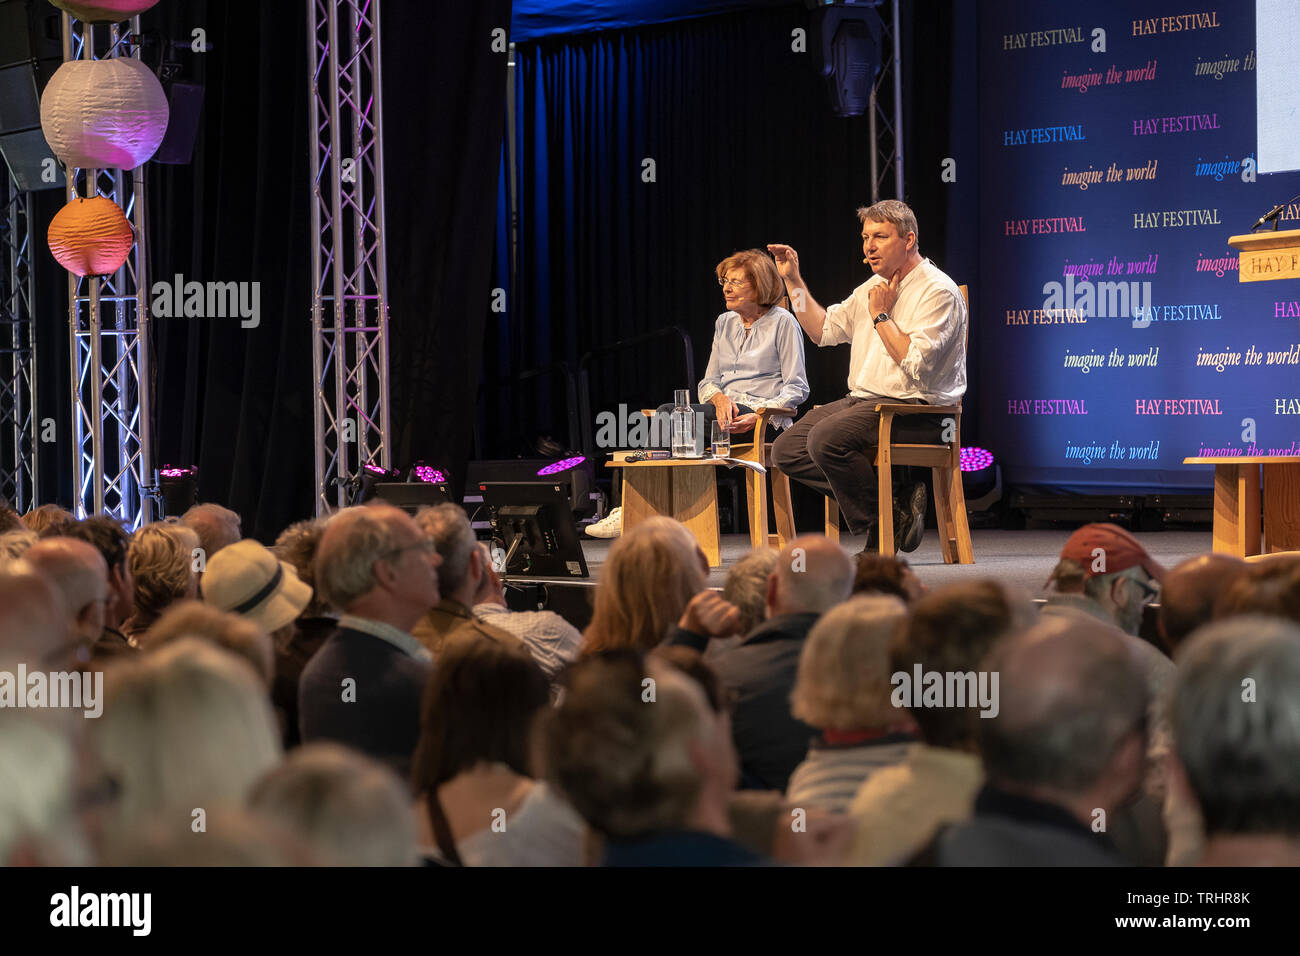 Danny Dorling and Sally Tomlinson speaking at the Hay Festival, Hay on Wye, Wales - Stock Image